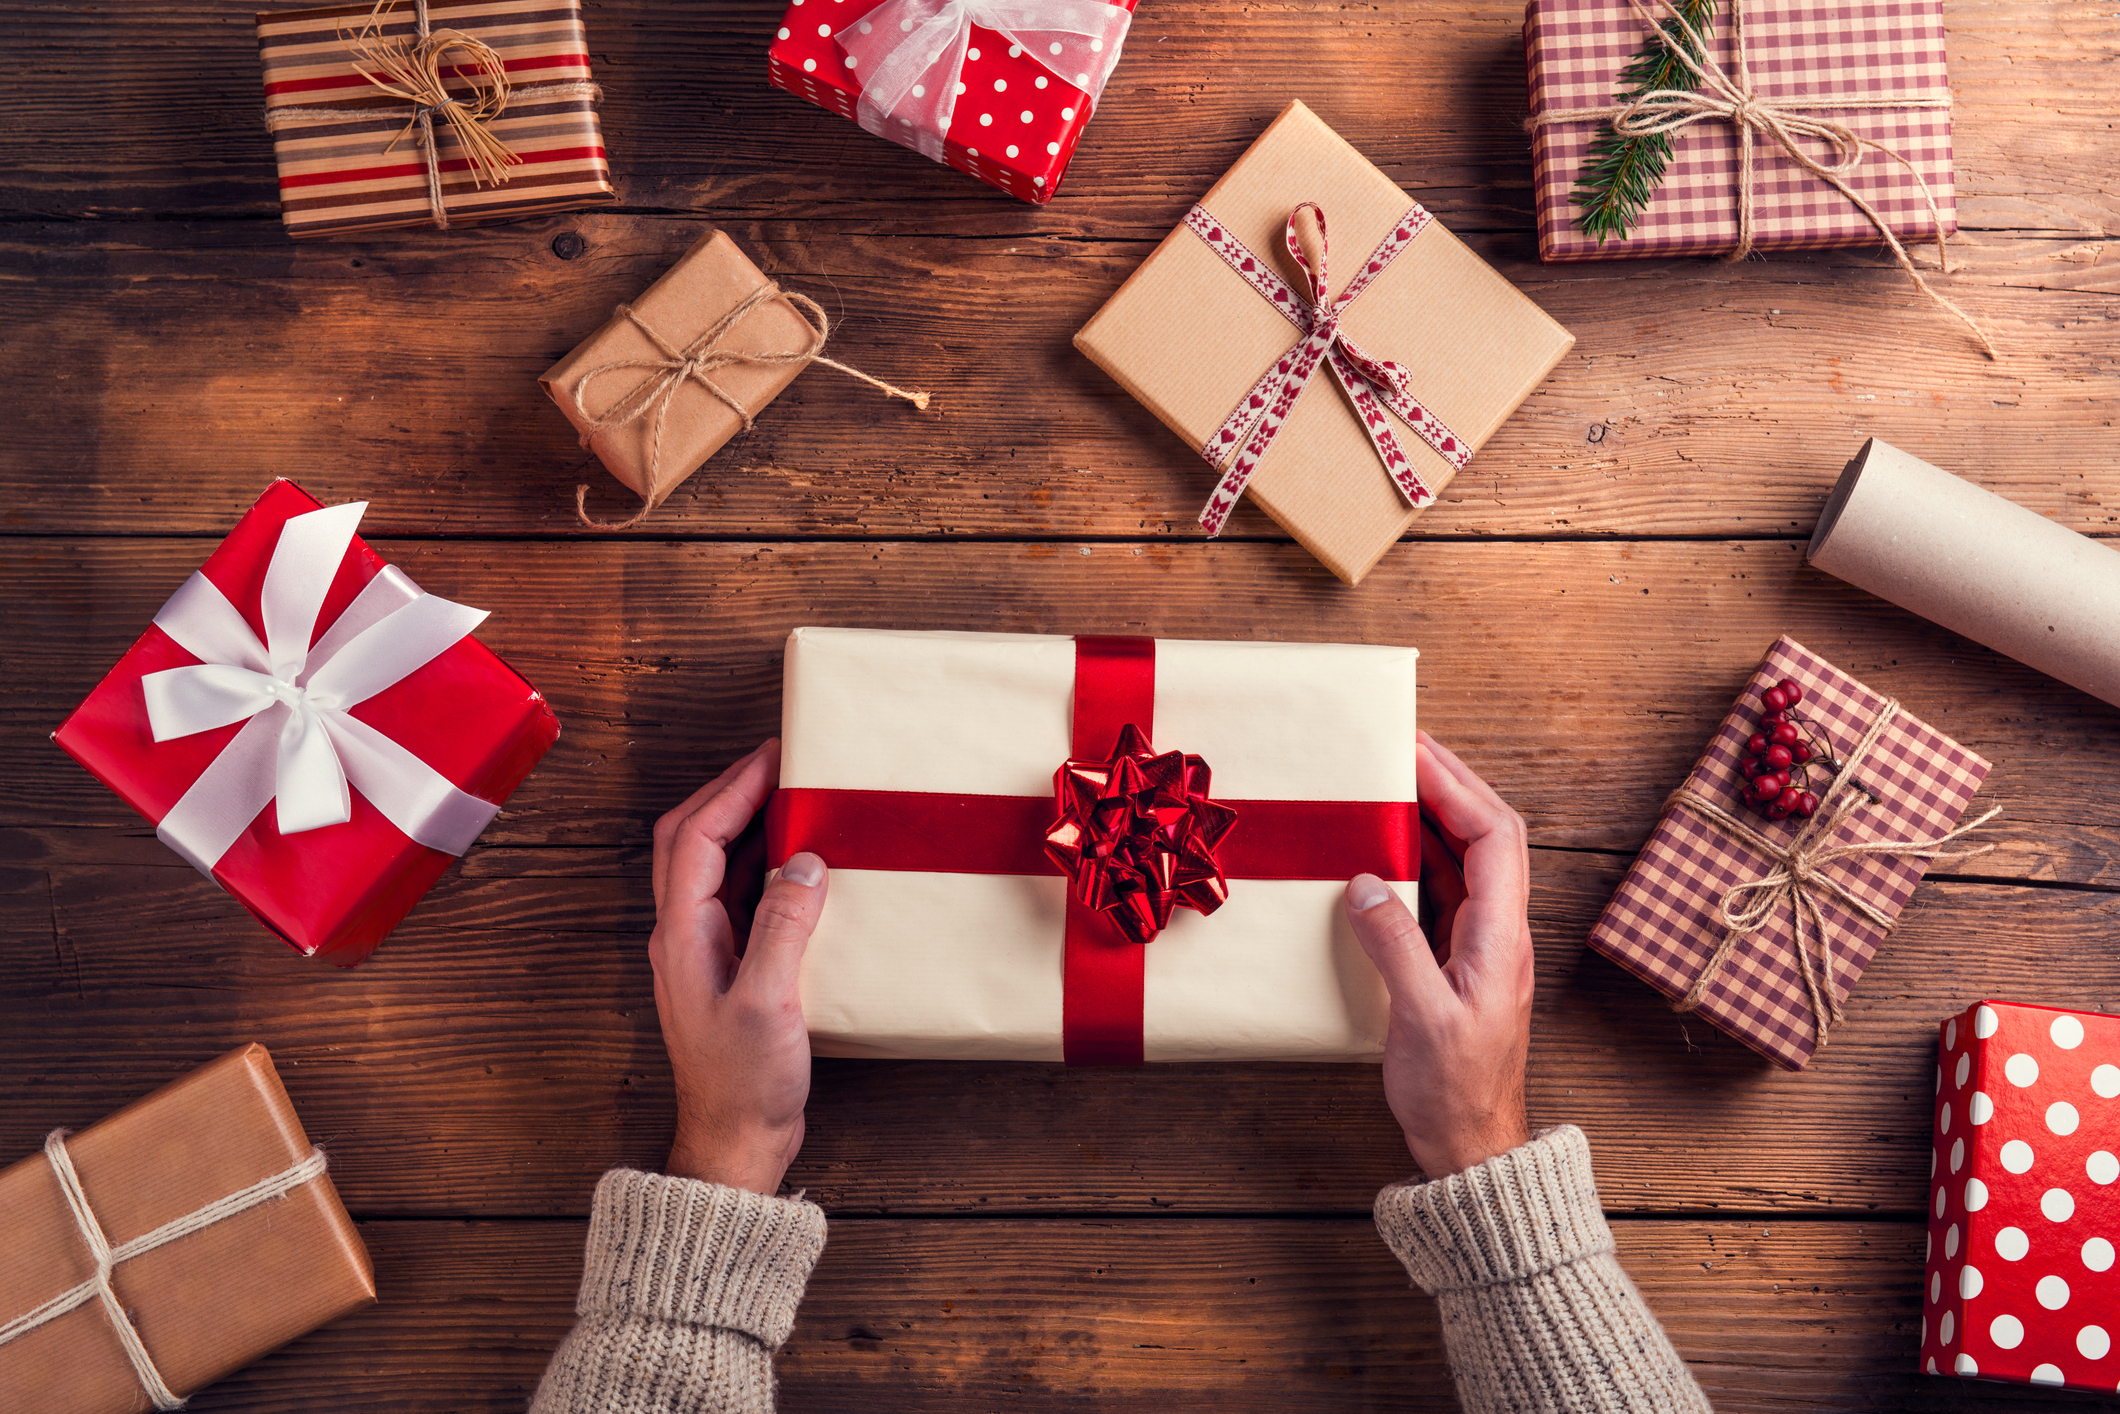 Rules of Gift Giving